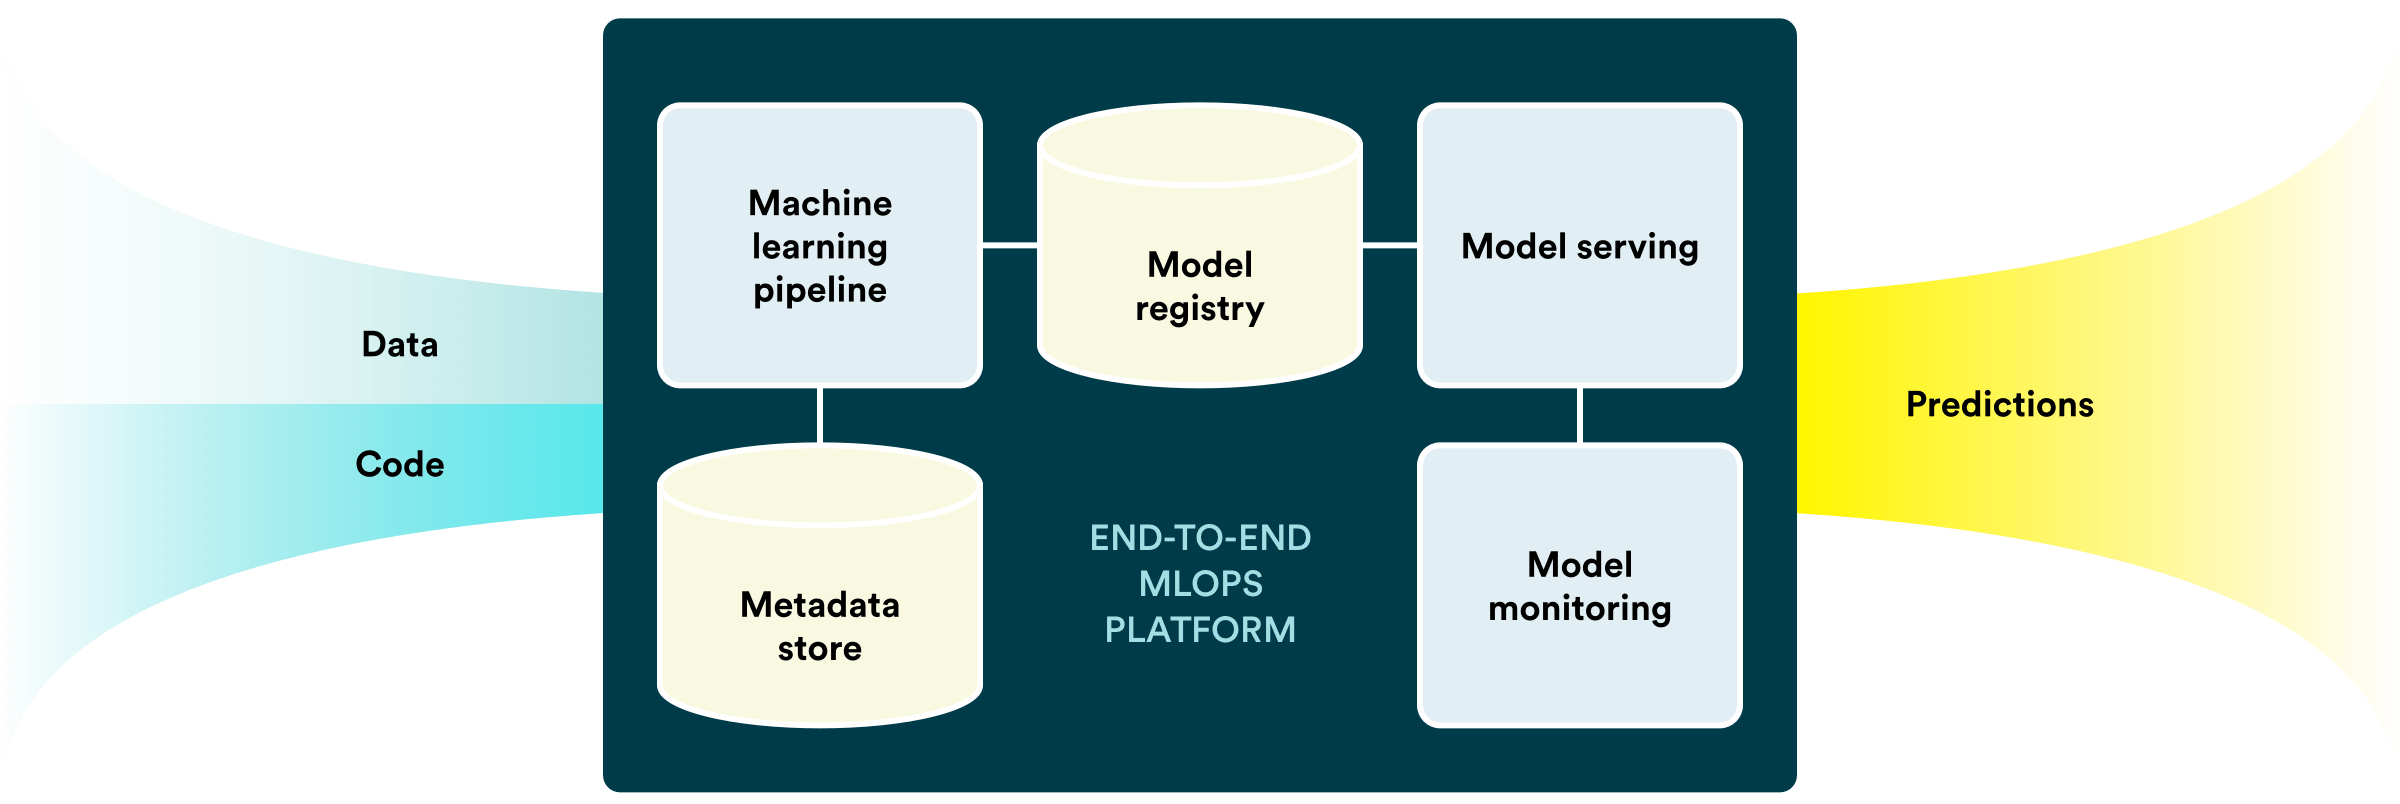 Valohai end-to-end platform